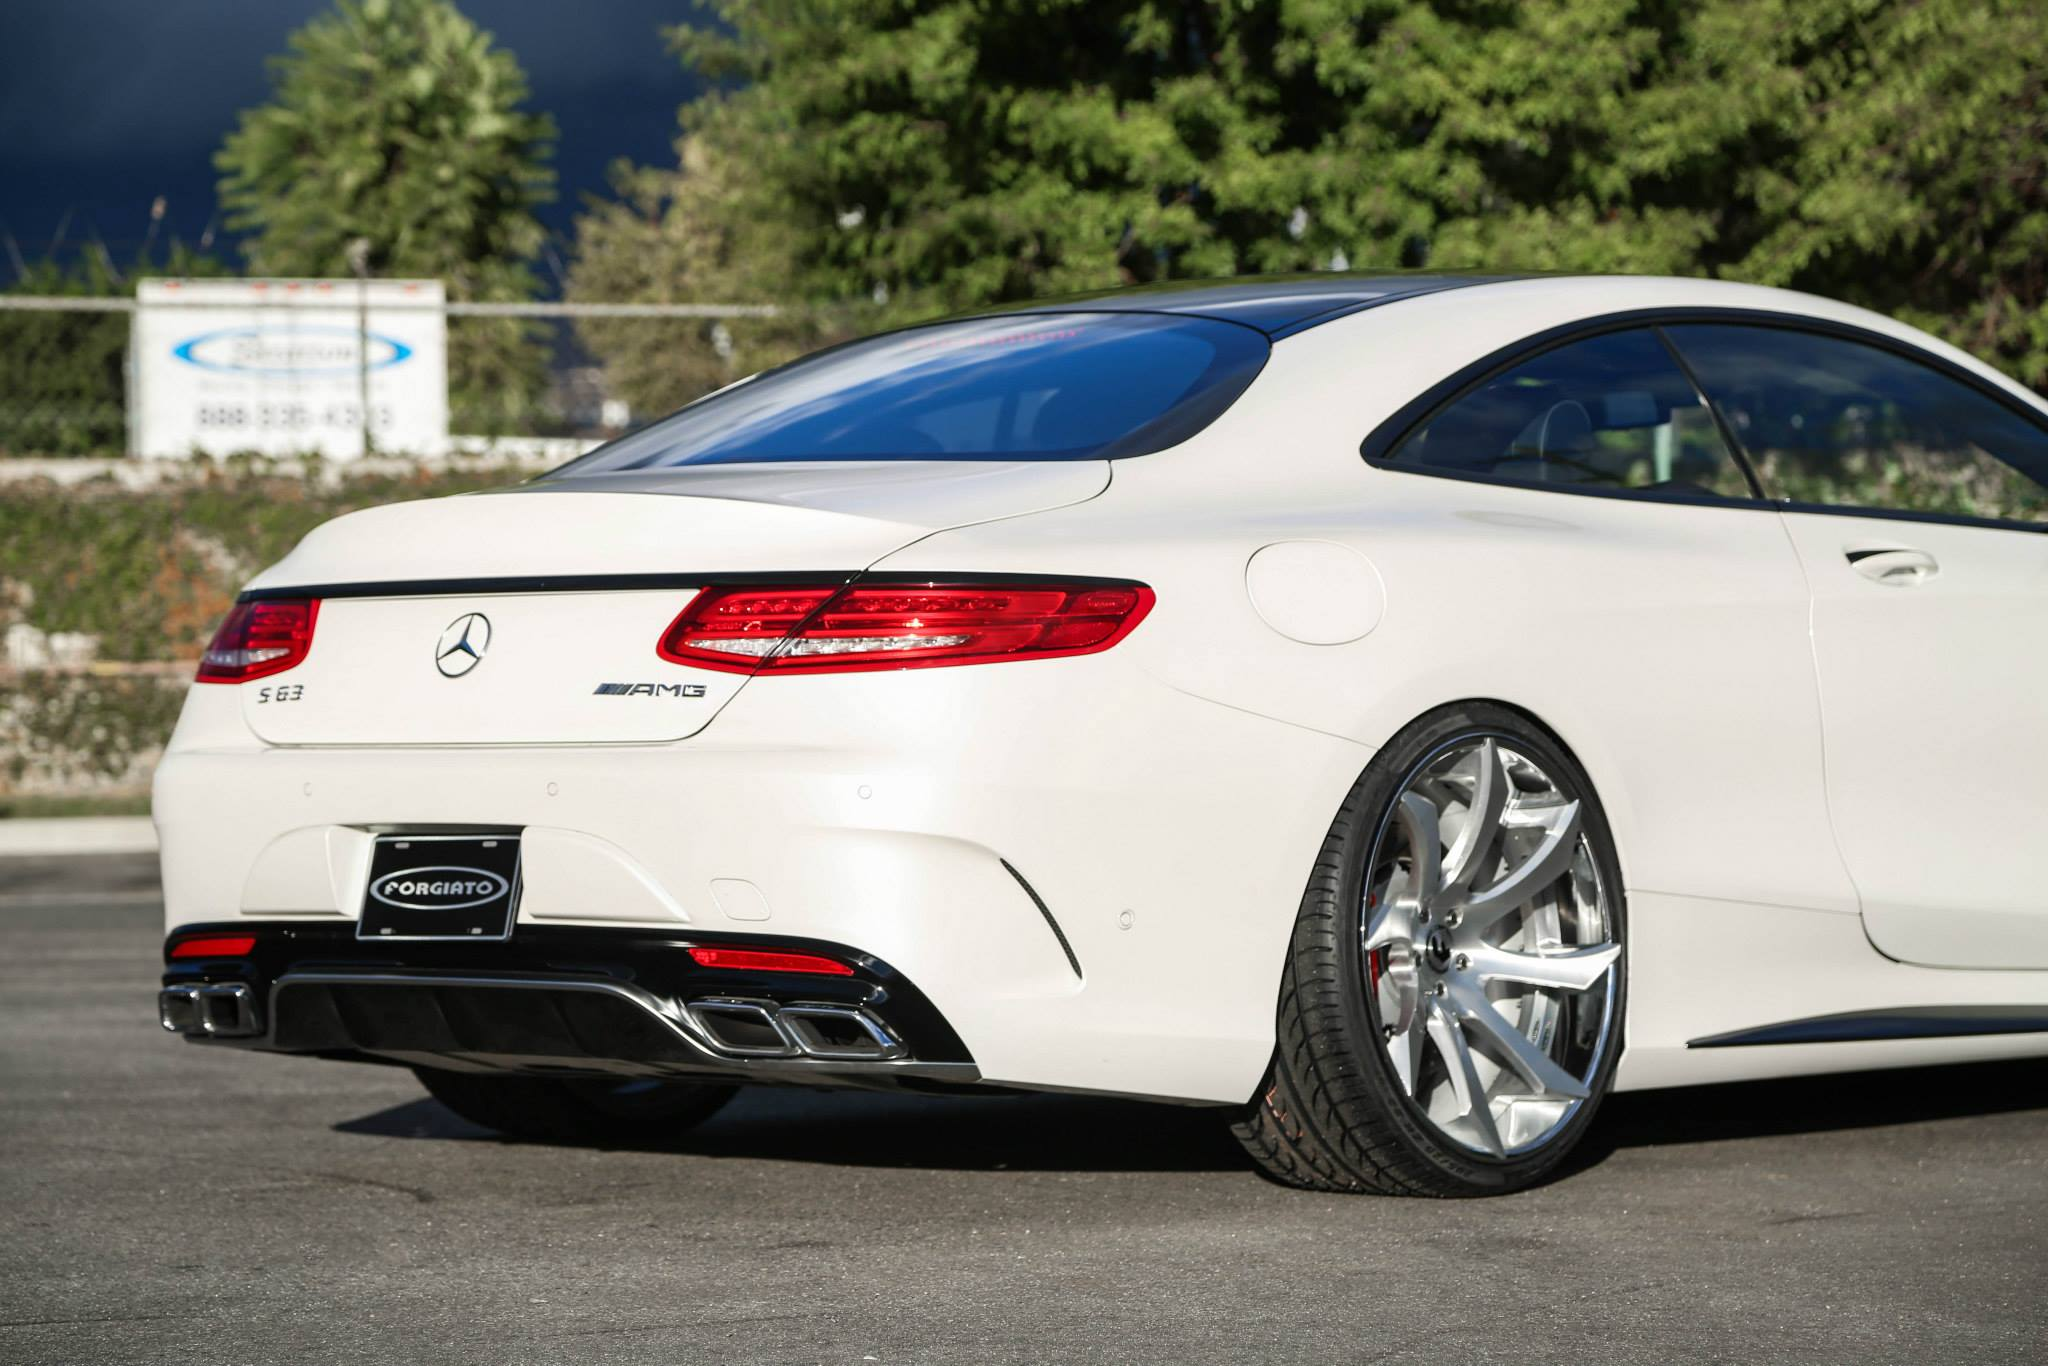 mercedes s63 amg coupe on forgiato fondare wheels. Black Bedroom Furniture Sets. Home Design Ideas